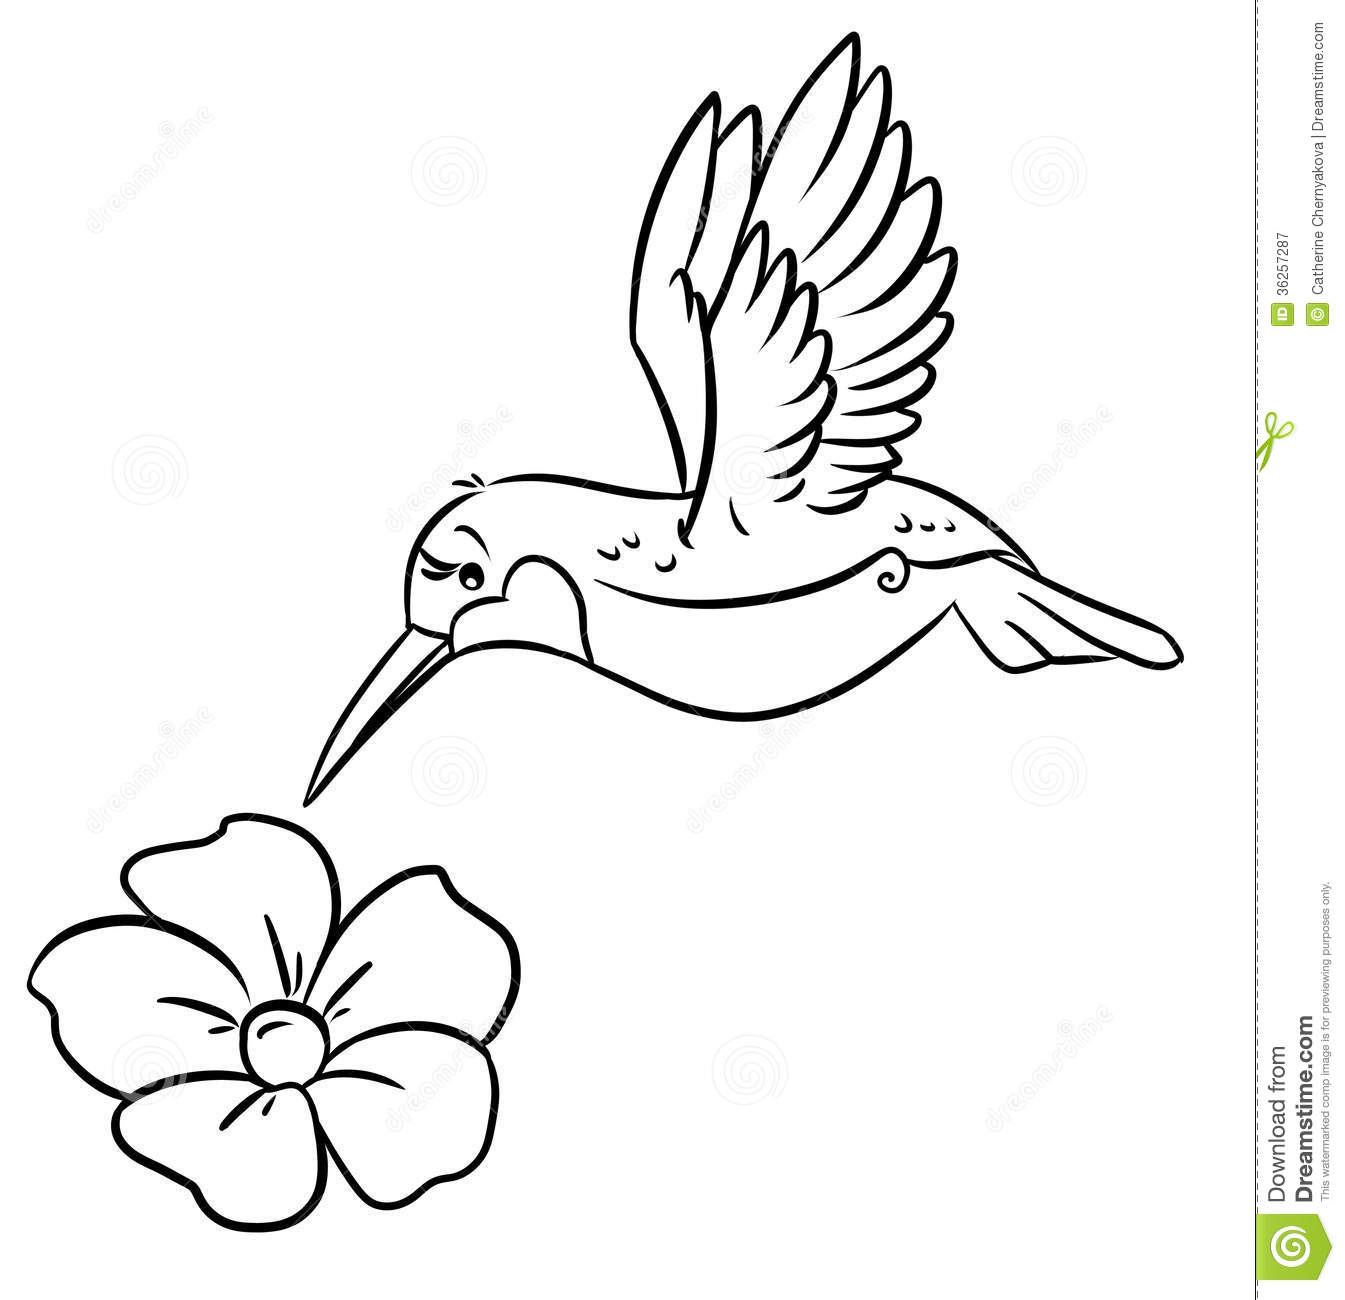 Hummingbird And Flower Coloring Pages Royalty Free Stock Photography